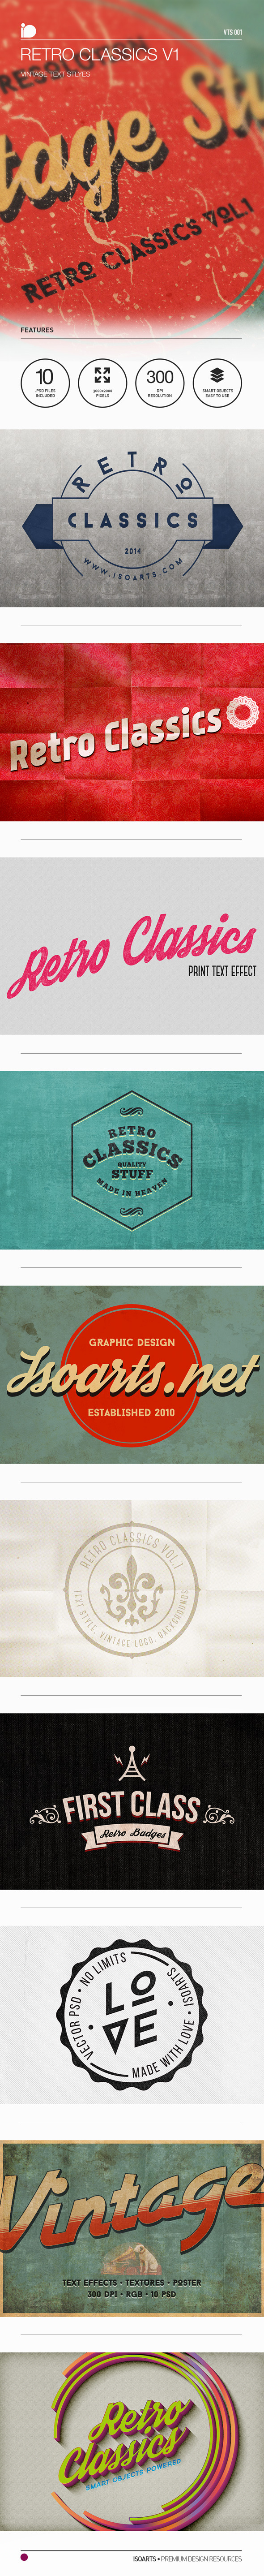 Vintage Text Styles • Retro Classics V1 - Text Effects Actions